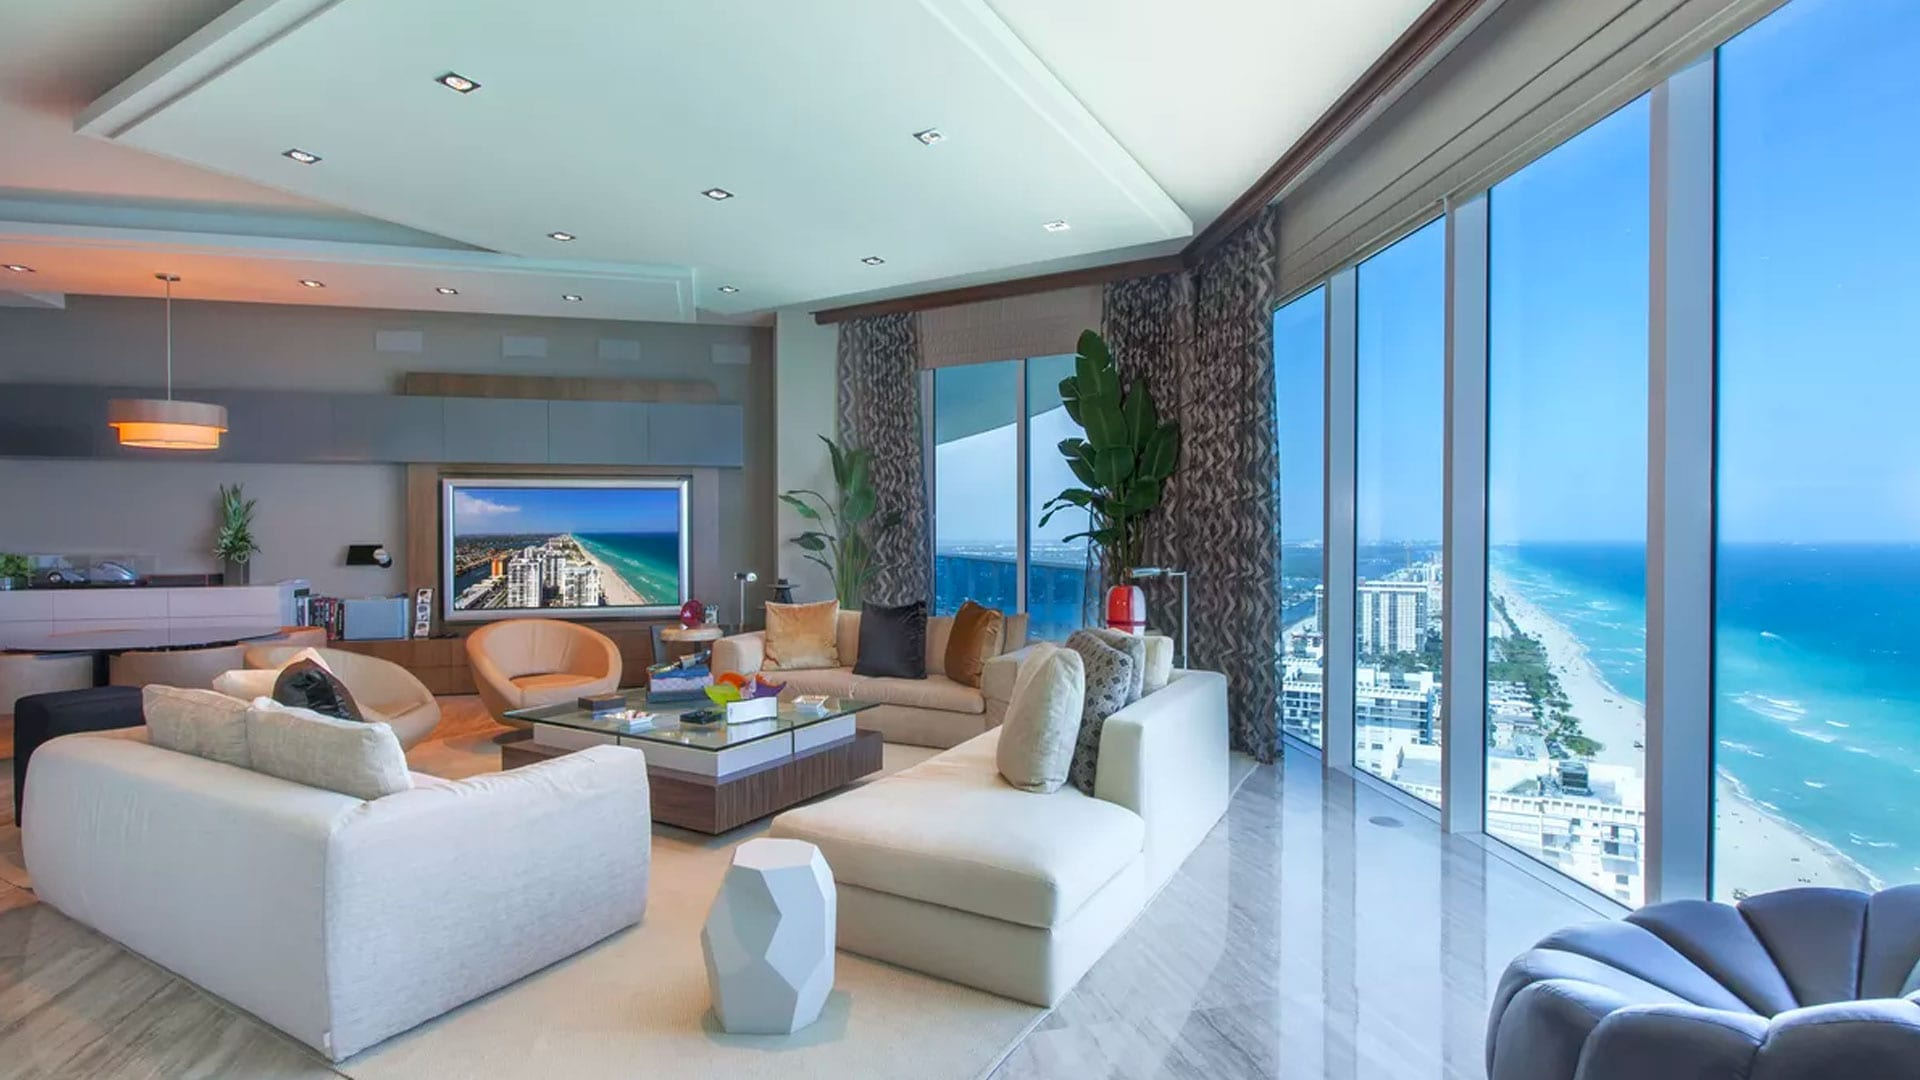 Trump Tower Hollywood by Robert M. Swedroe Architecture Miami